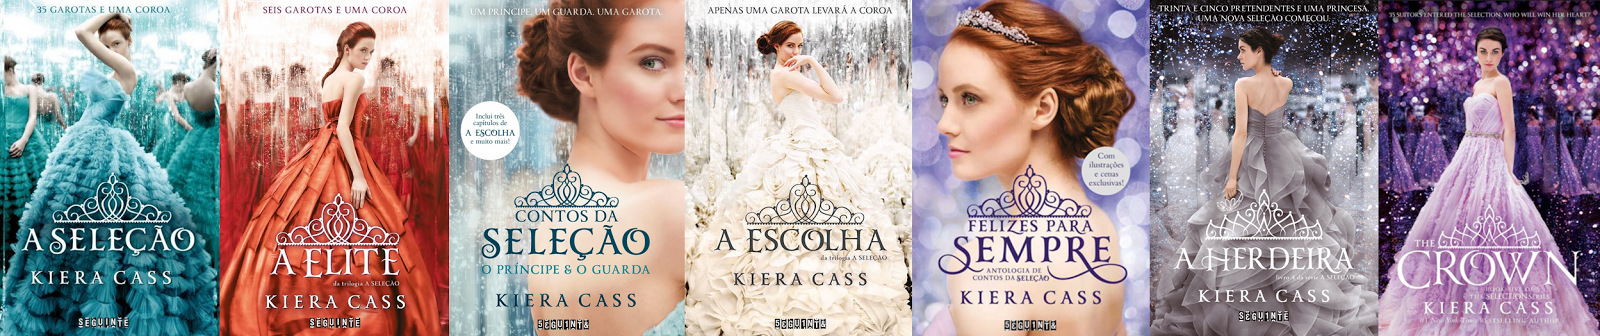 the heir kiera cass pdf vk